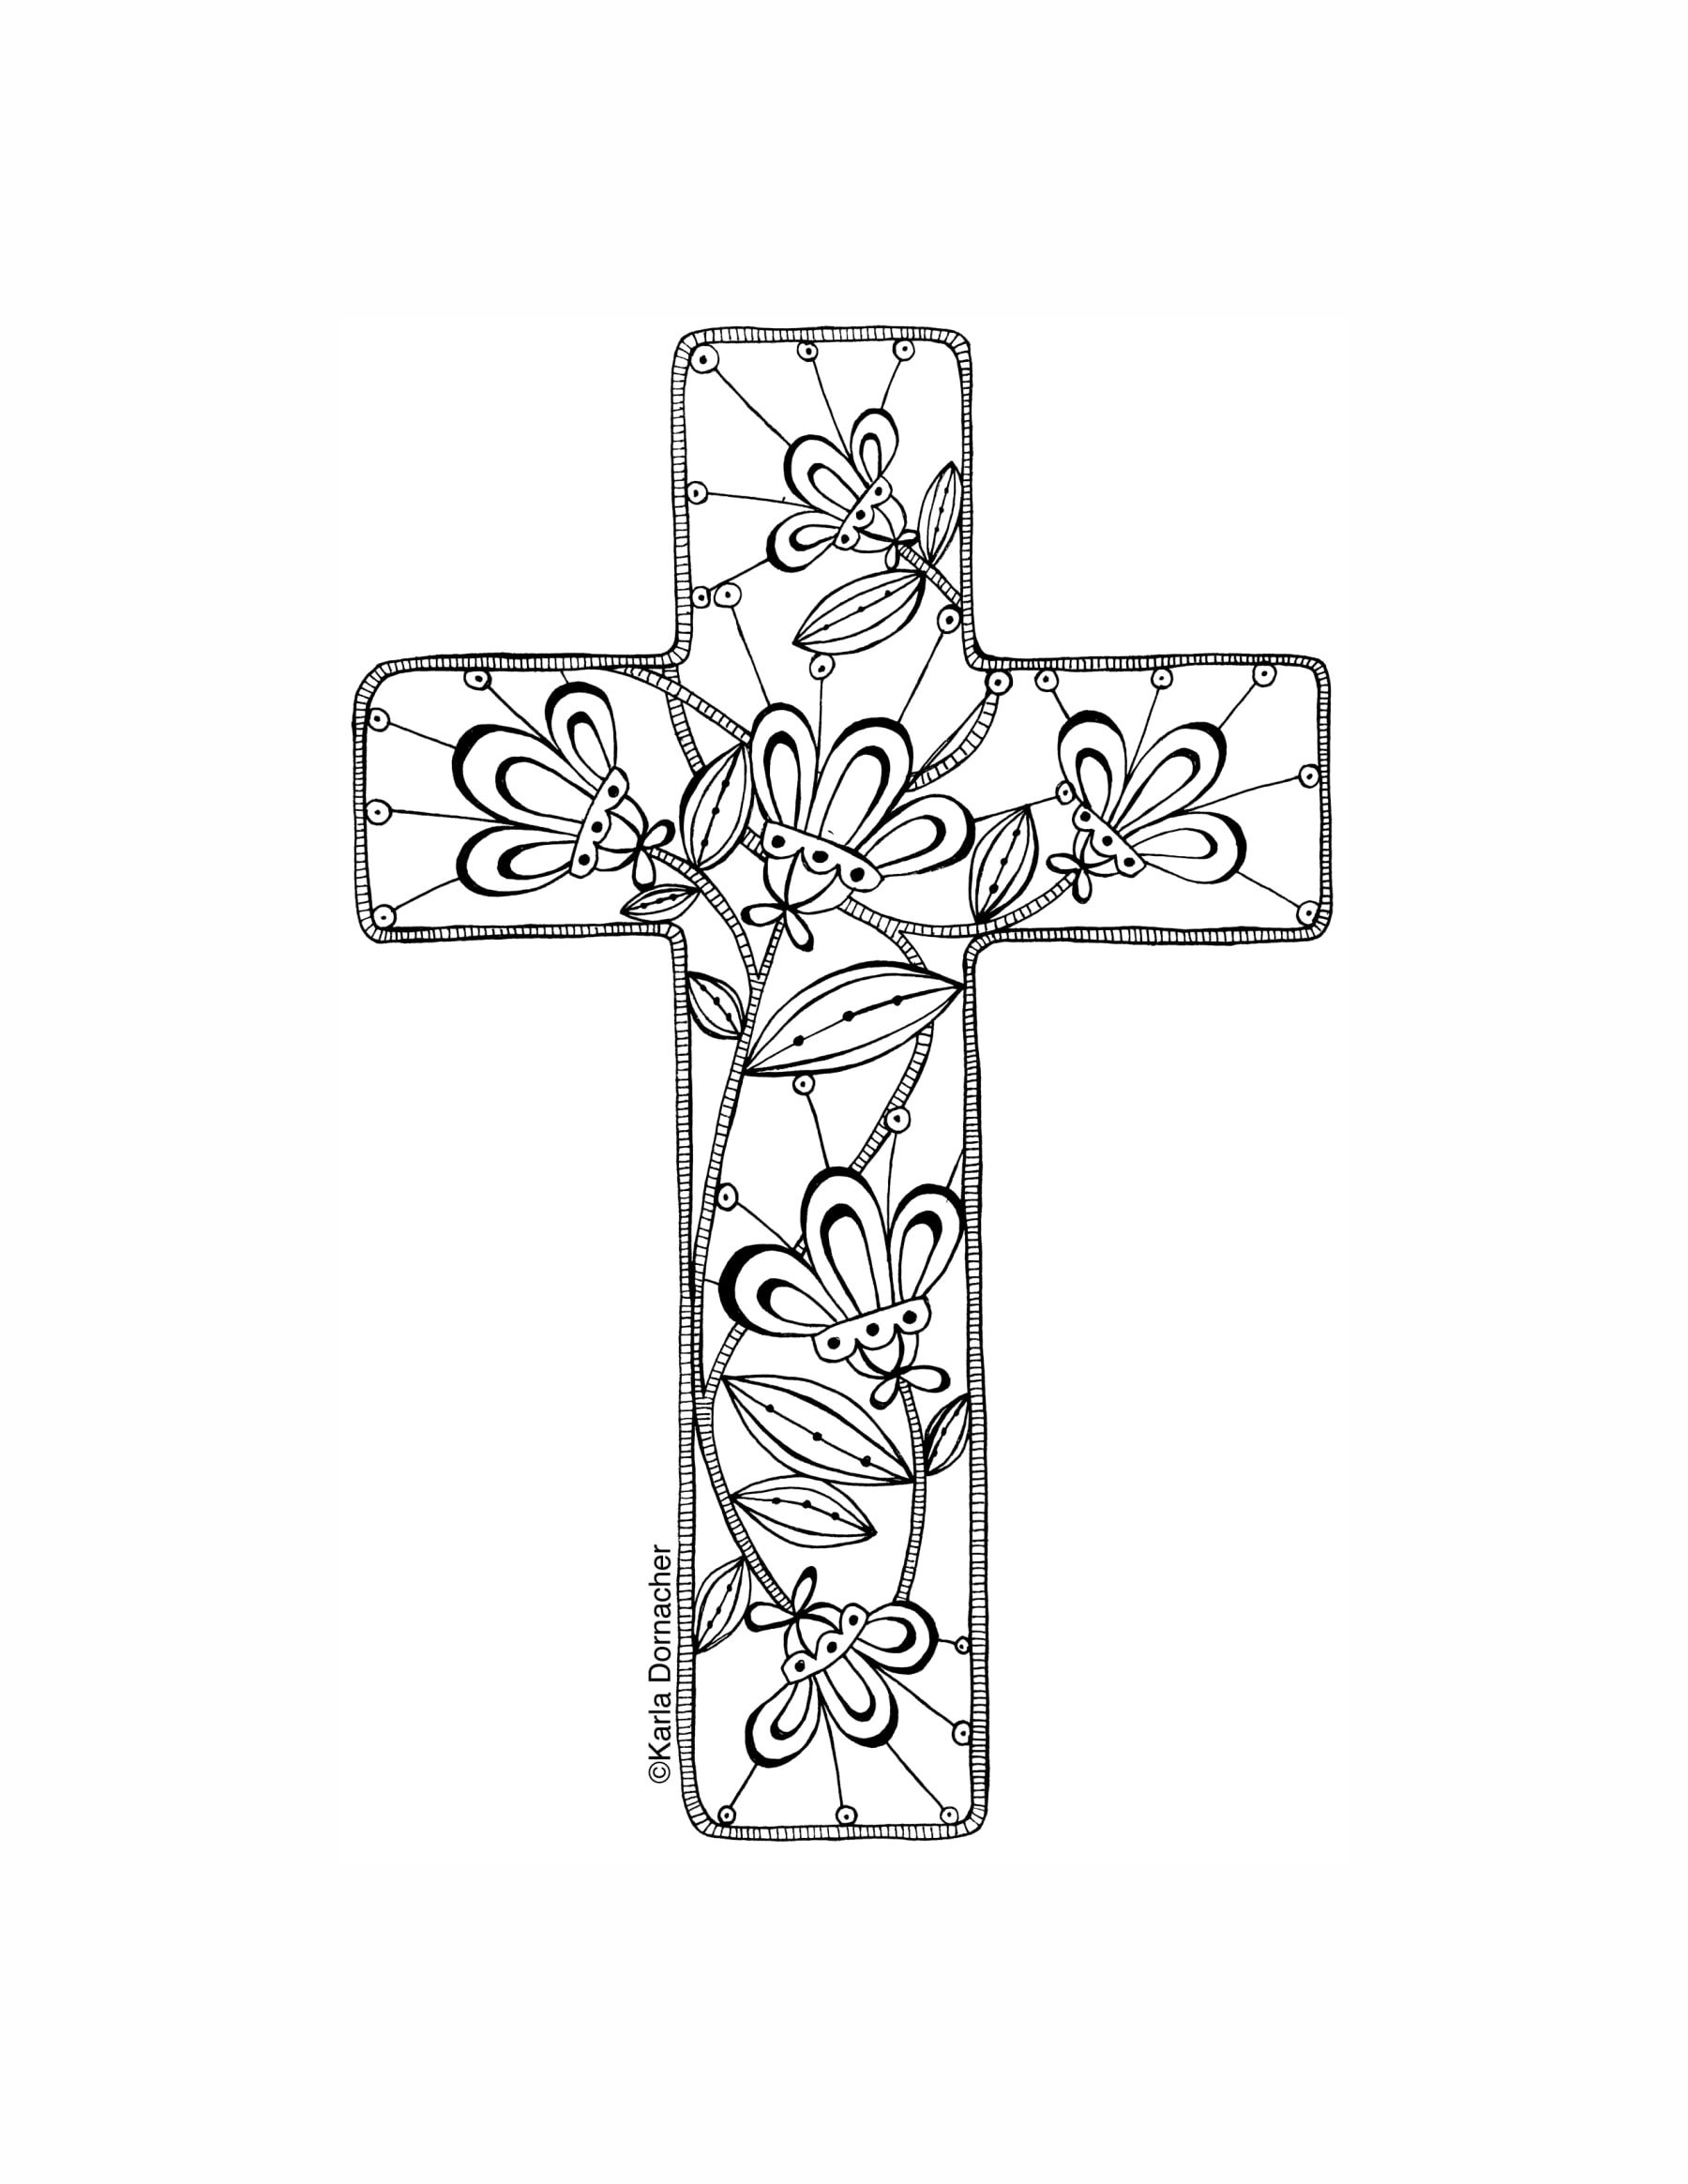 KD Floral Cross Coloring Pagepdf